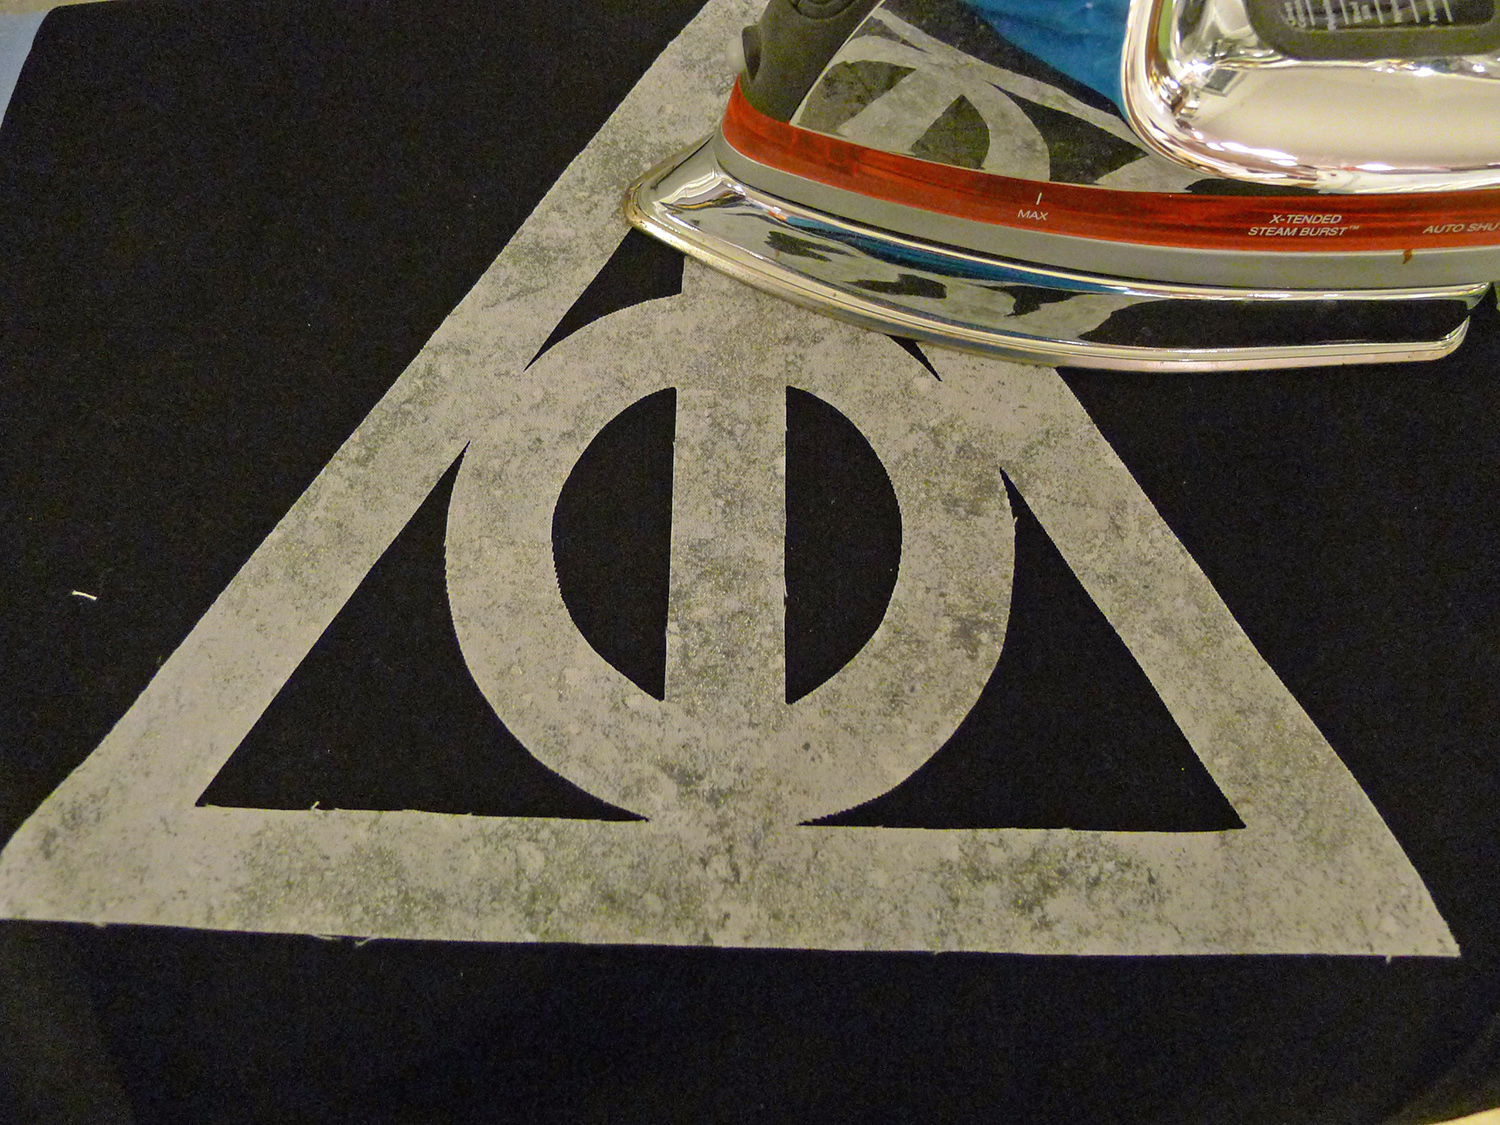 Harry potter deathly hallows pillow tutorial fairfield world blog 022 harry potter deathly hallows pillow biocorpaavc